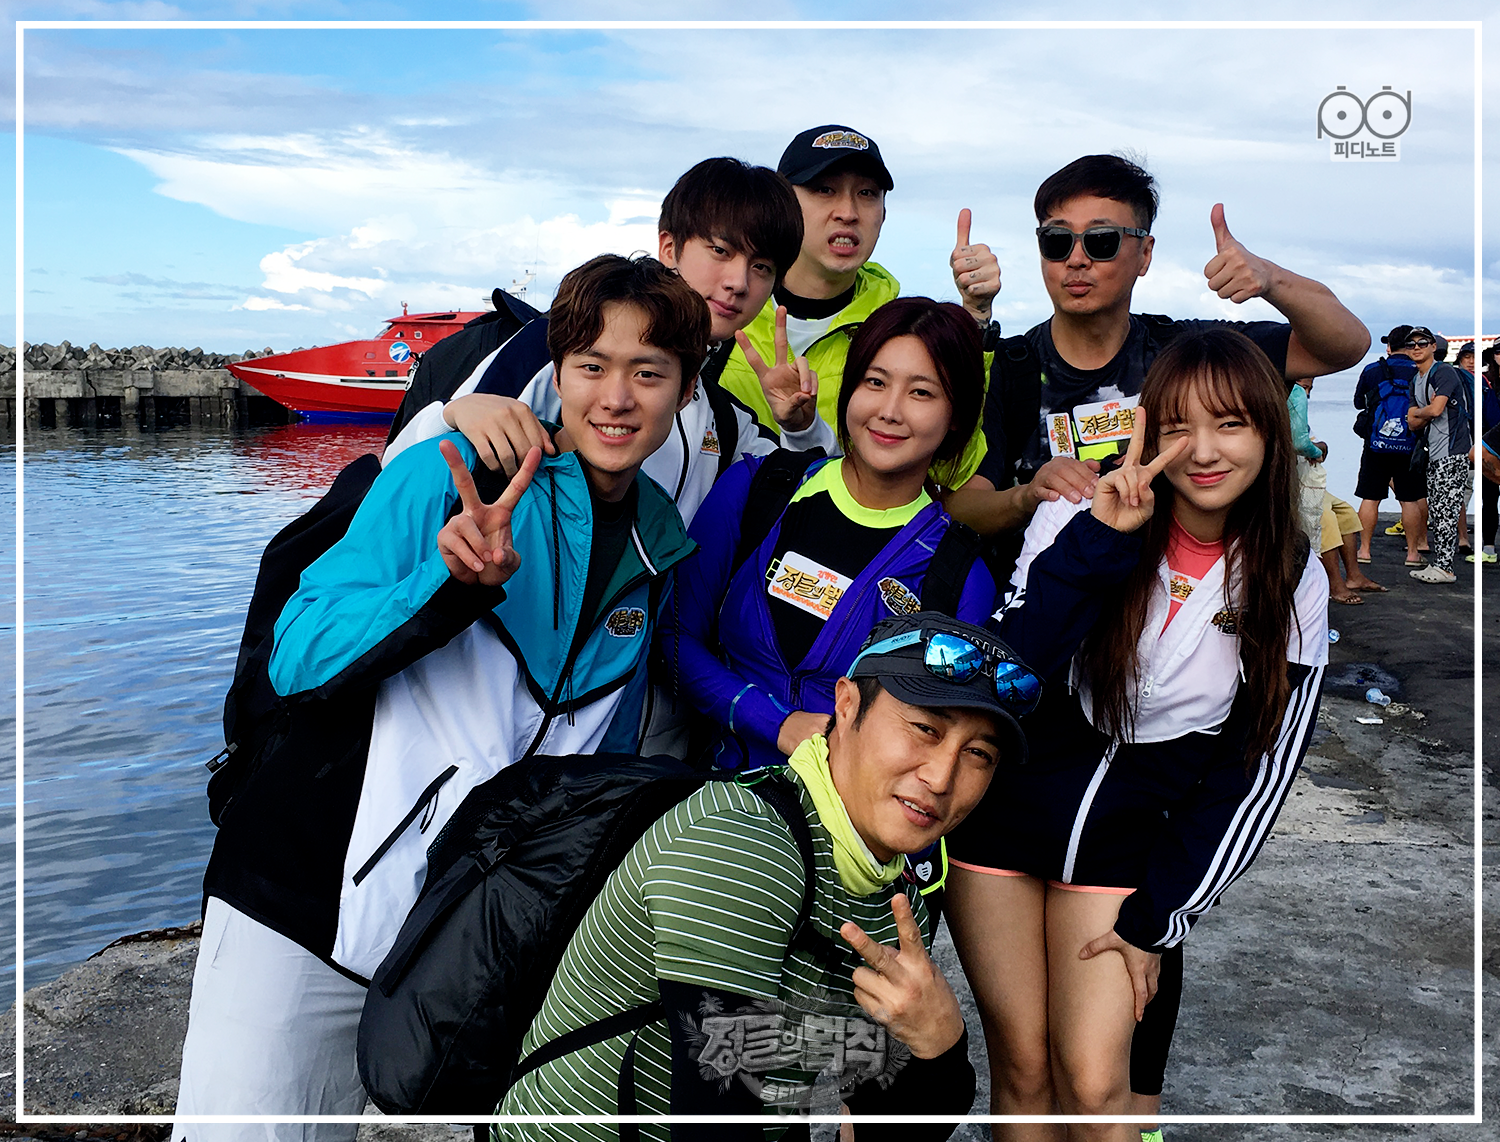 Picture] [PD NOTE] BTS'Jin on Law of the Jungle in Kota